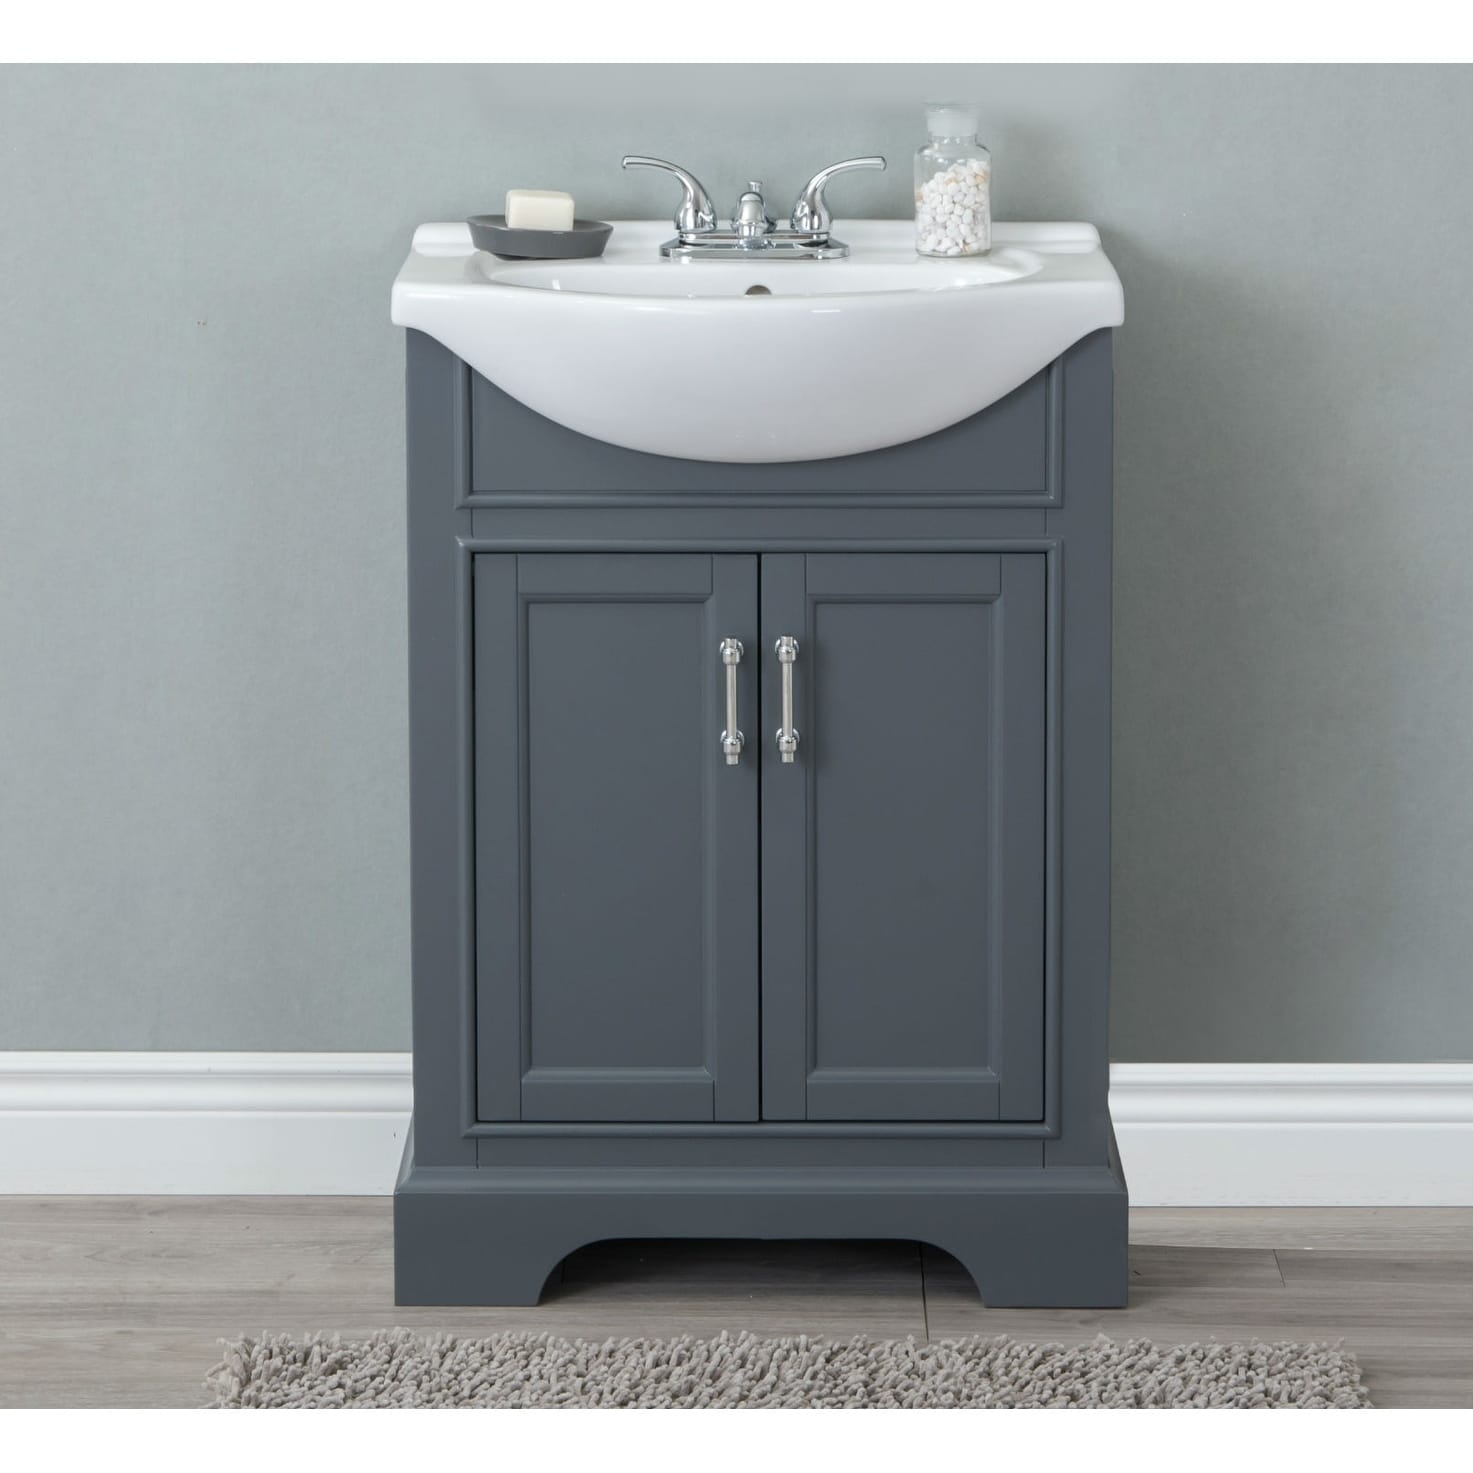 Bathroom Vanity In Dark Gray With Ceramic Top   Free Shipping Today    Overstock   10411161